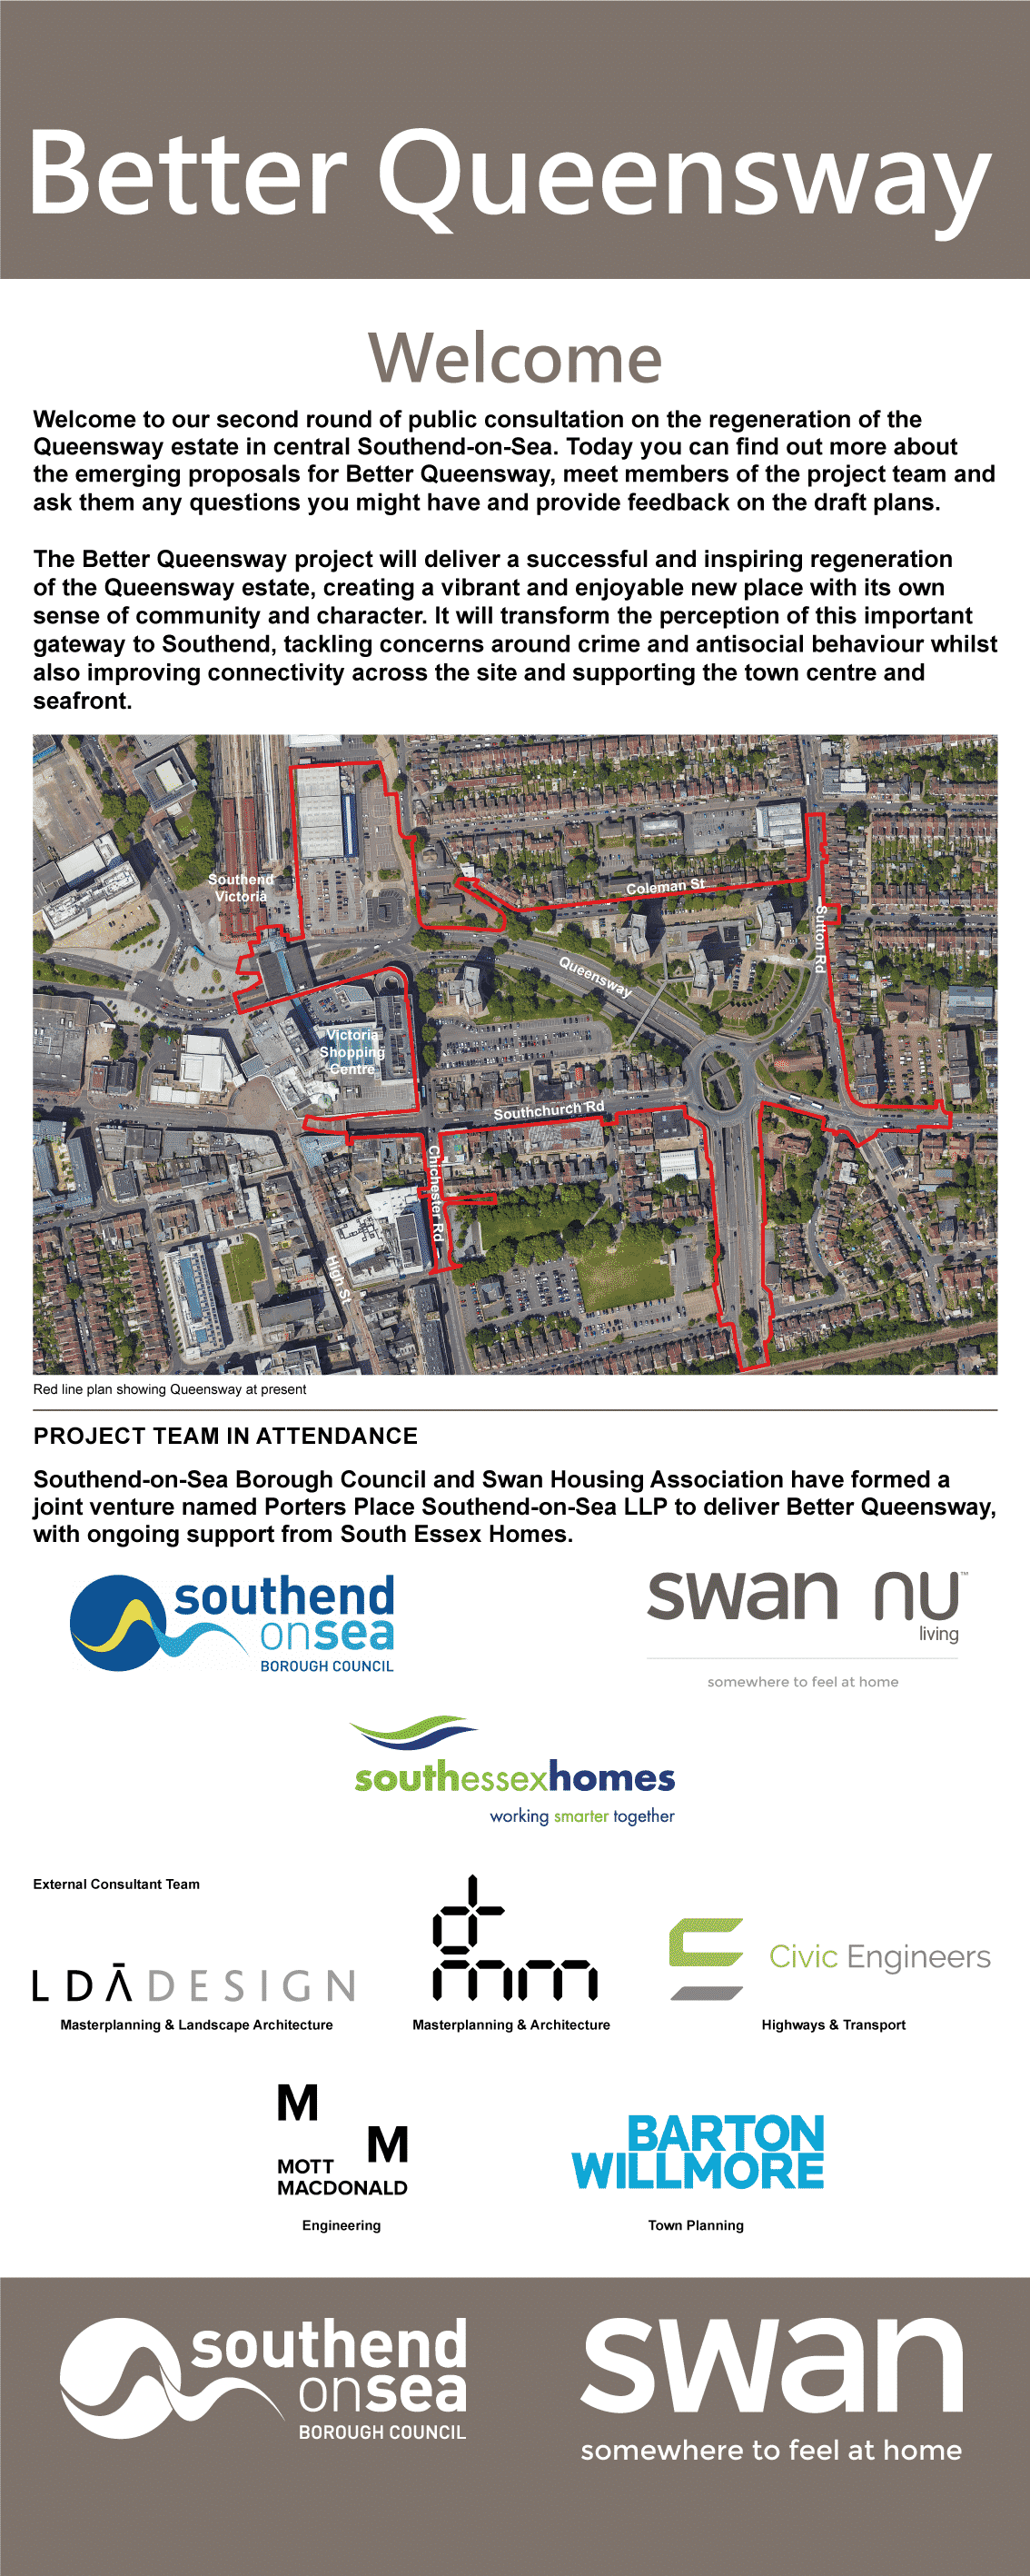 better-queensway-second-public-consultation-1